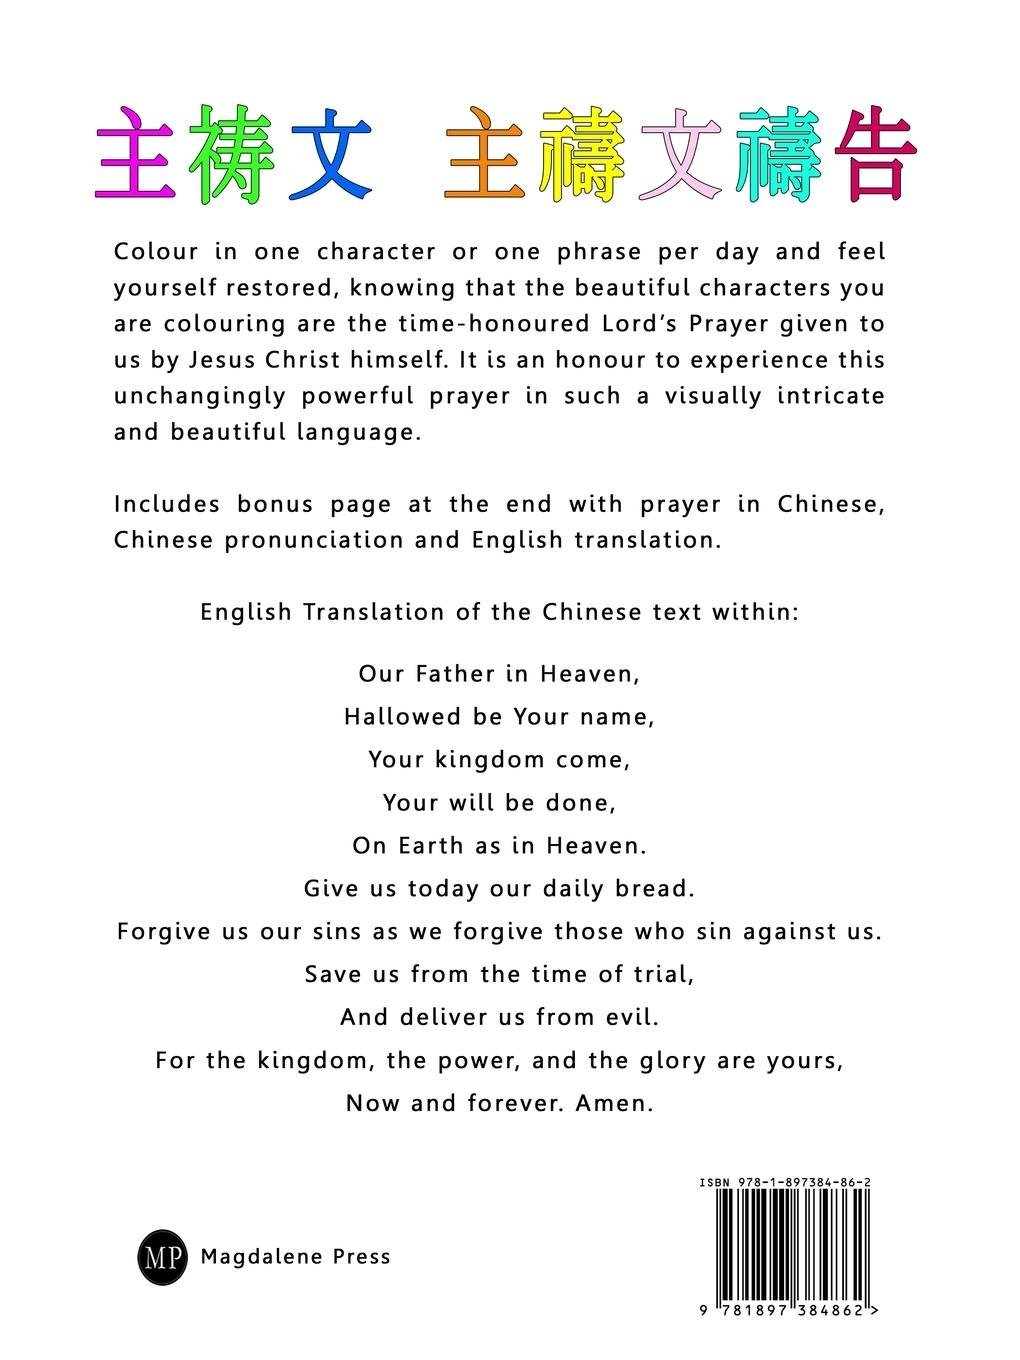 Amazon com: The Lord's Prayer in Mandarin Colouring Book: The